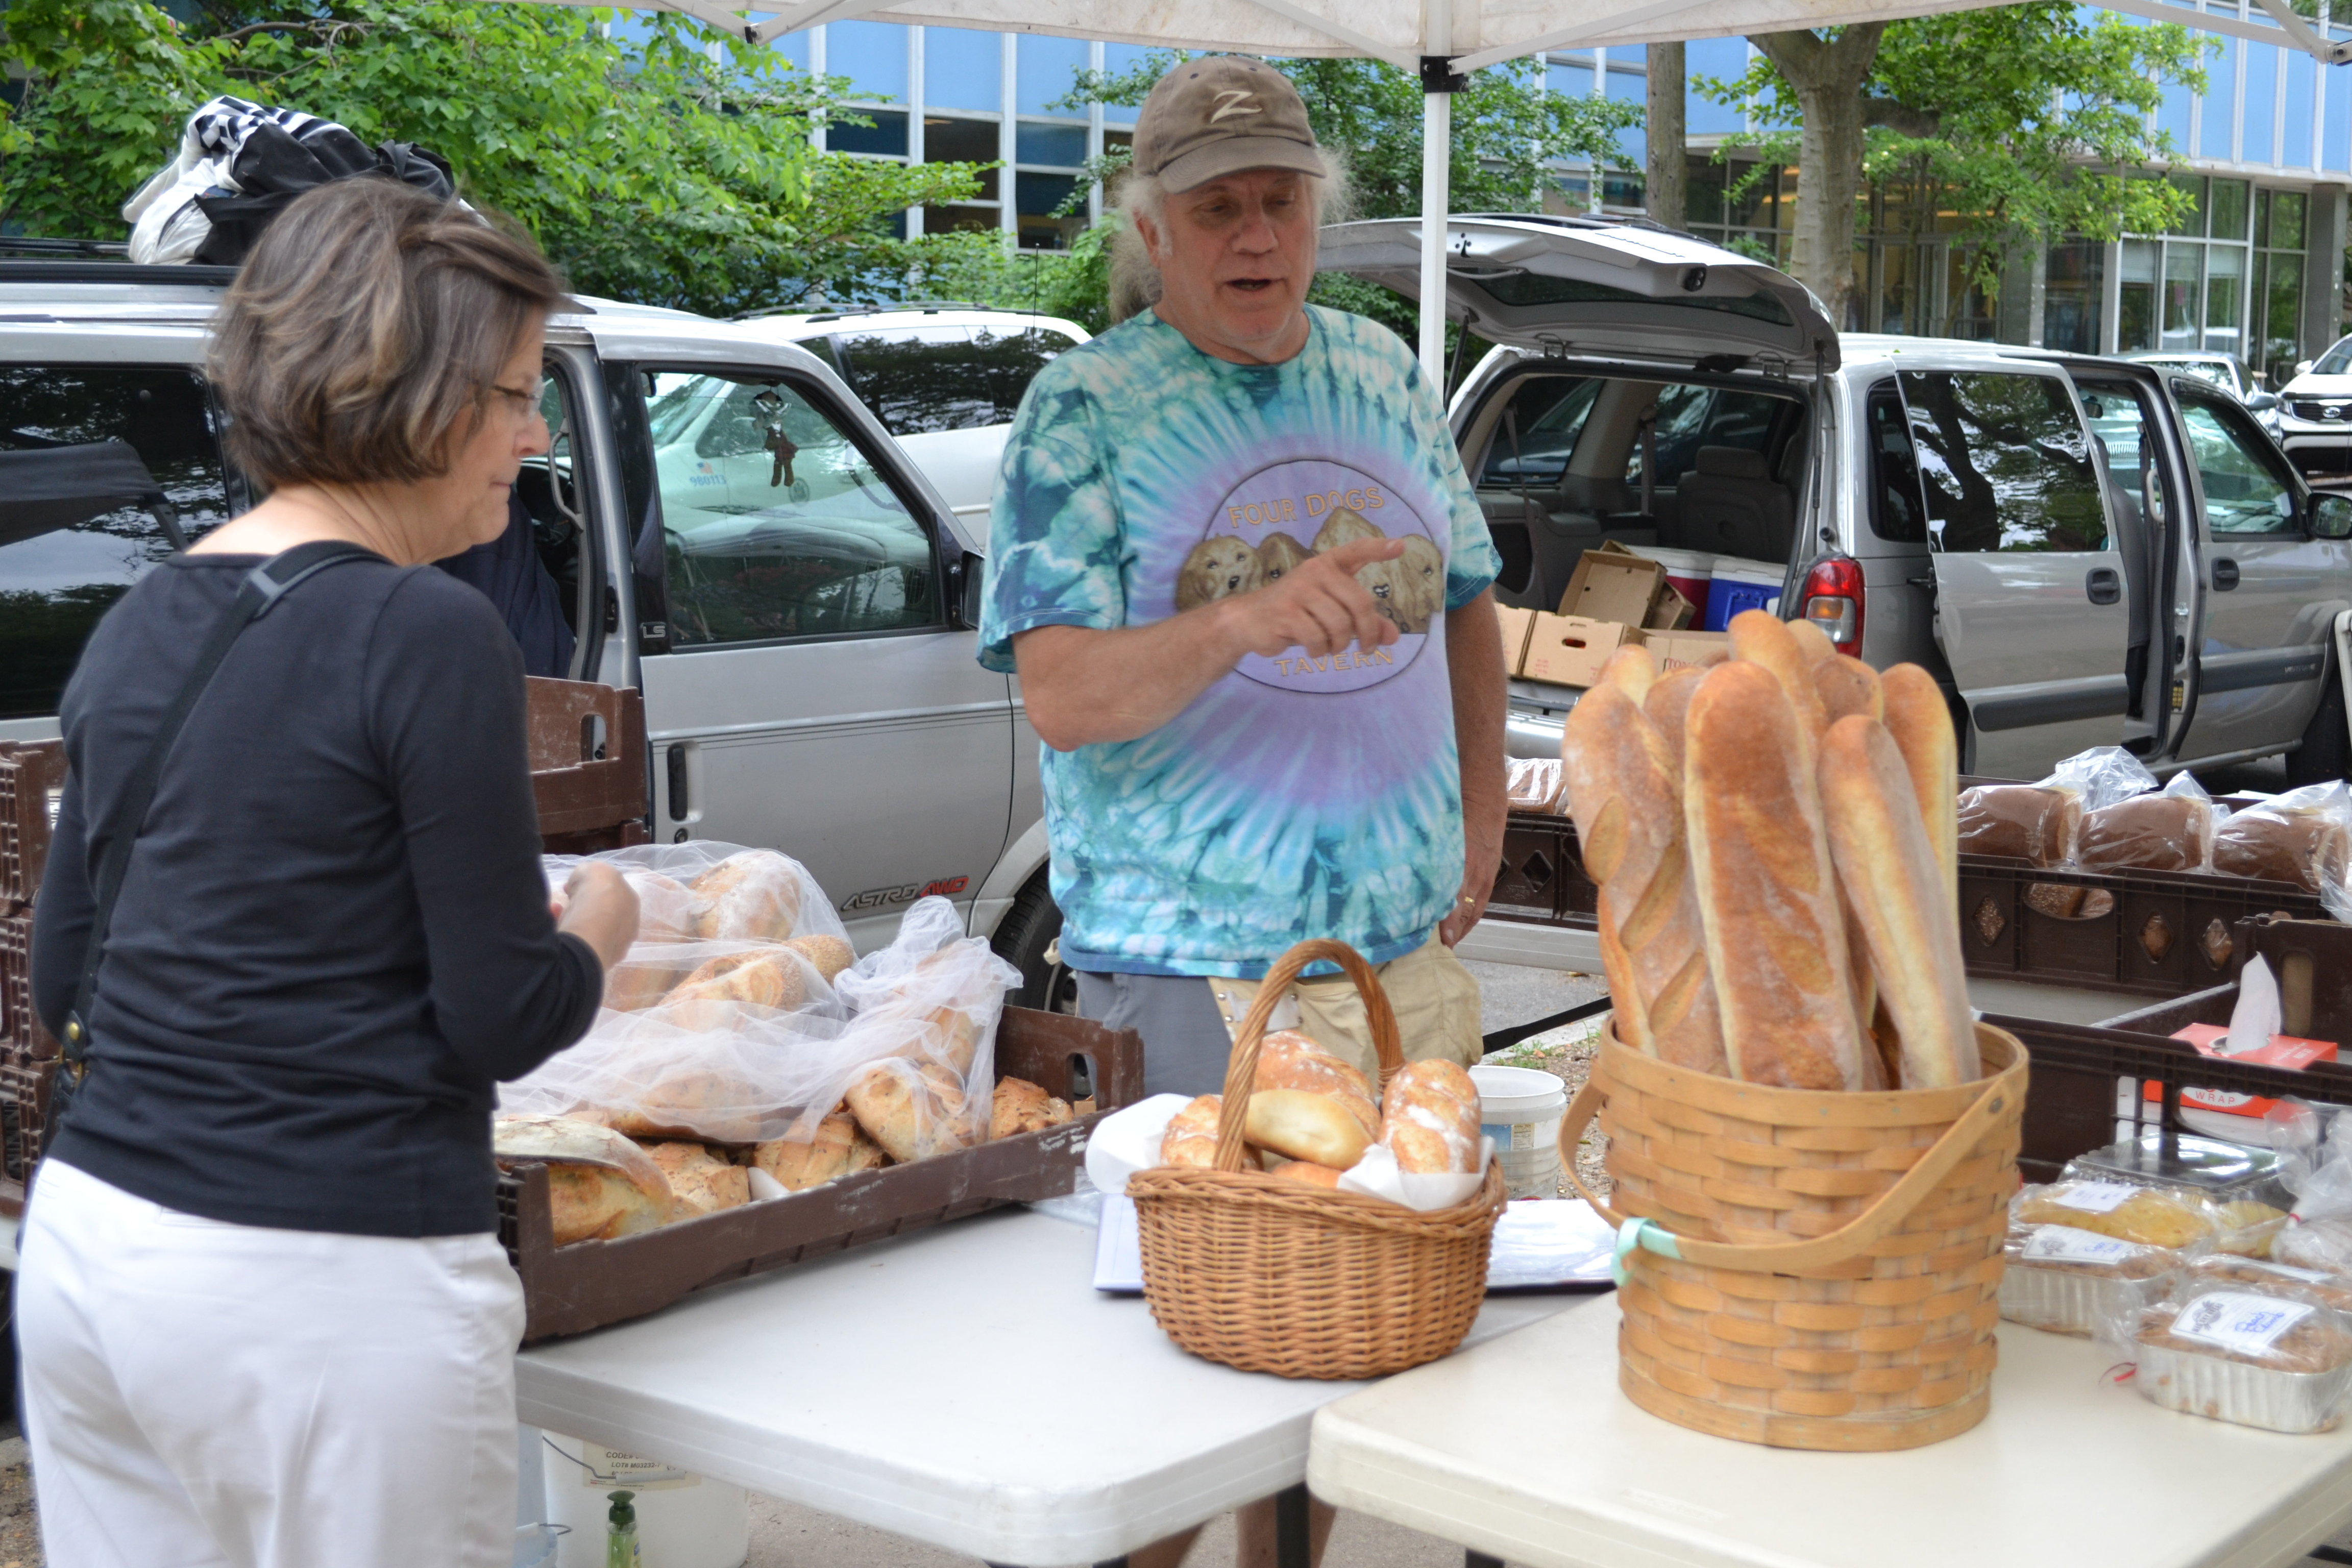 The Thursday farmers market returned to Clark Park this week